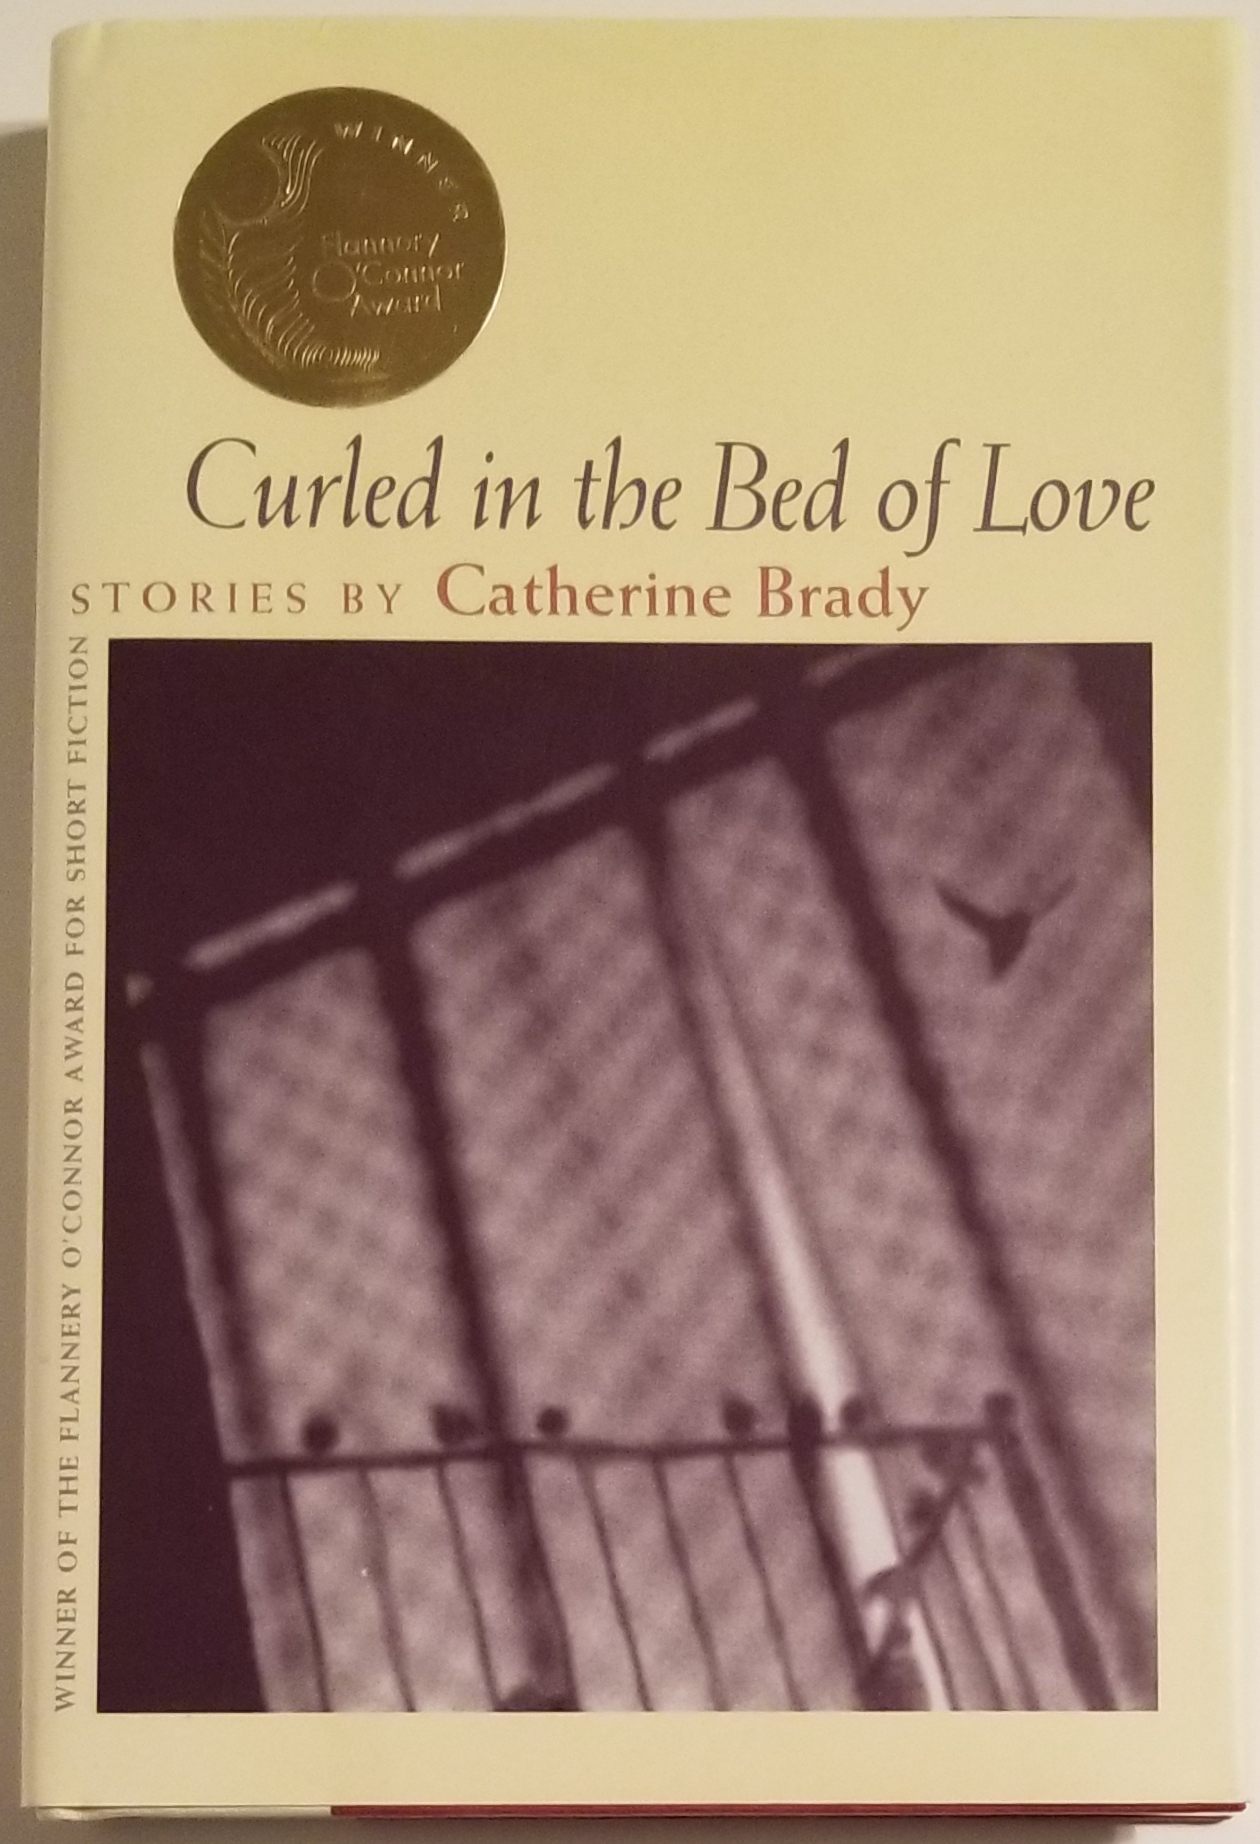 CURLED IN THE BED OF LOVE. Catherine Brady.